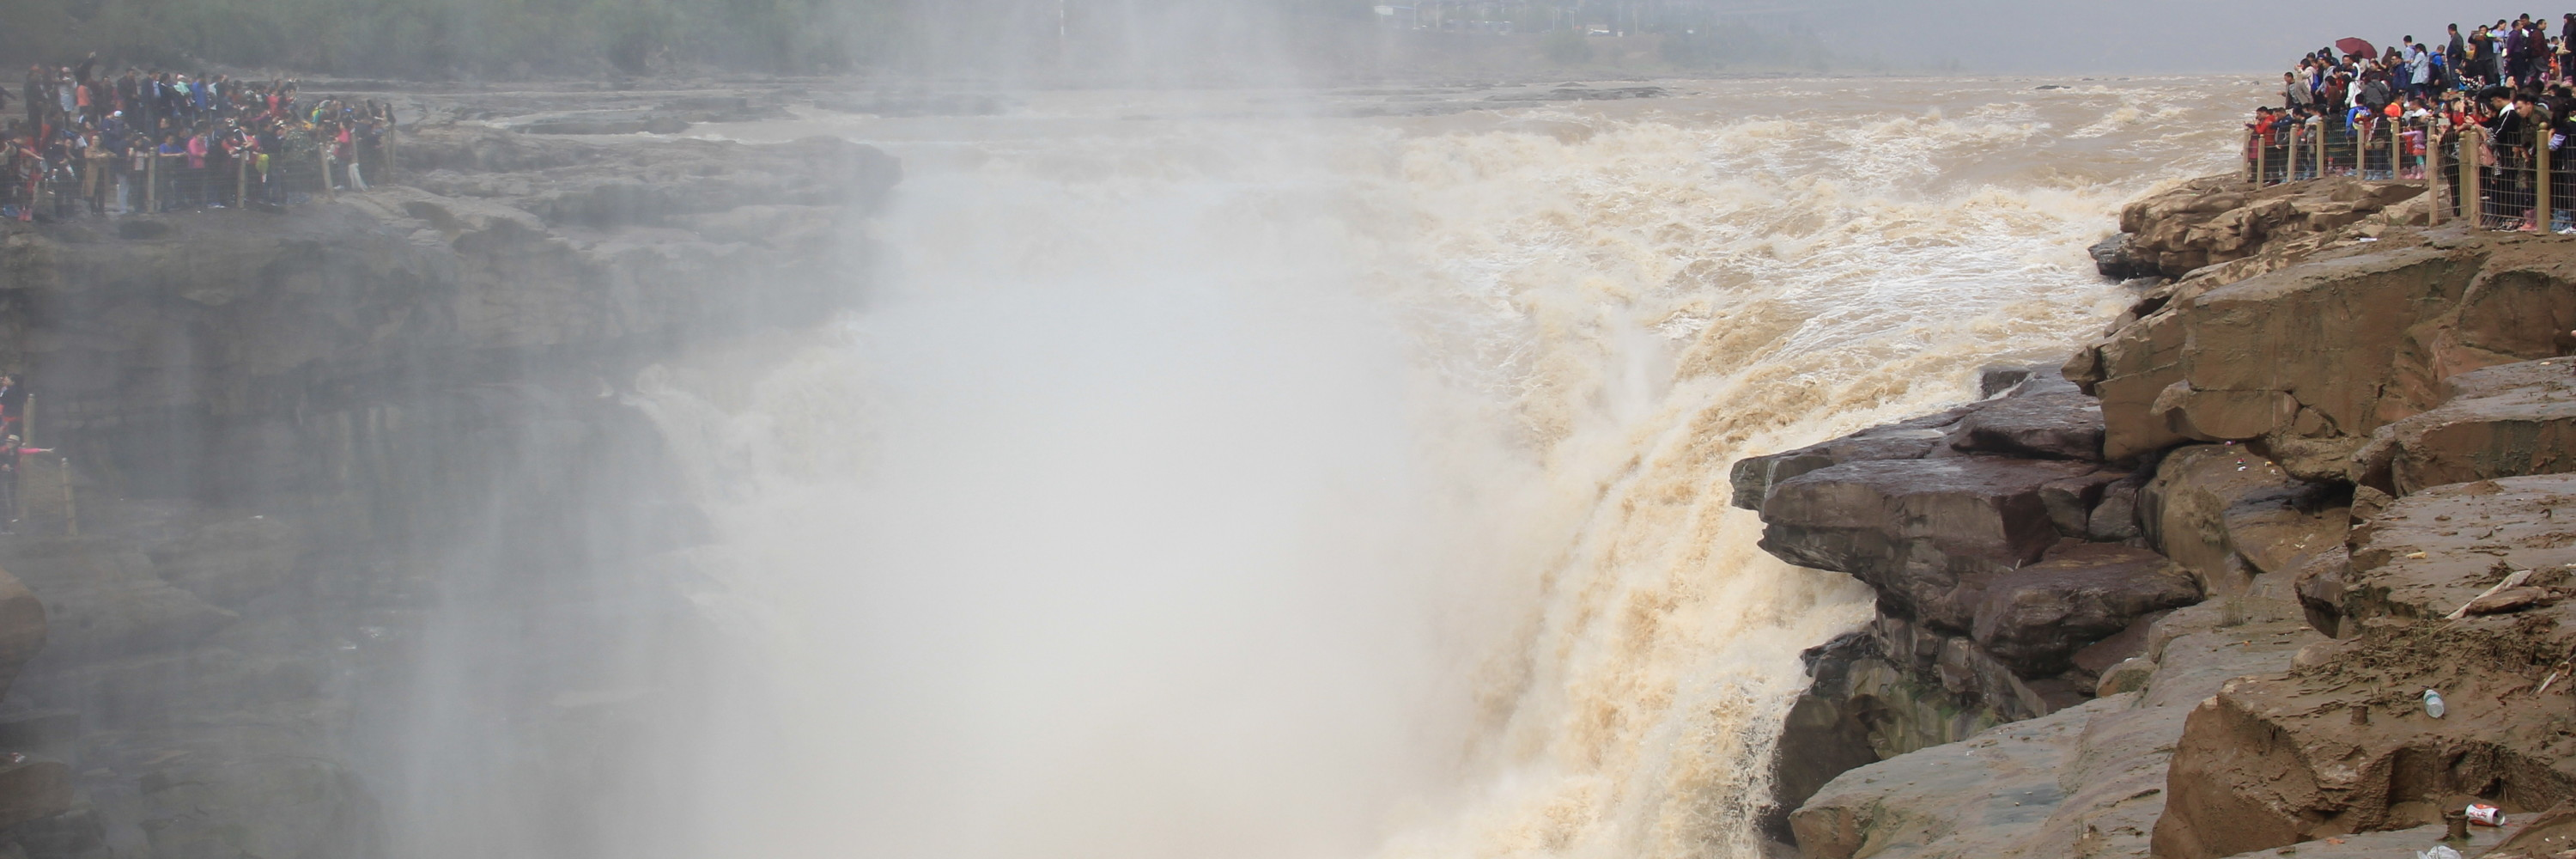 Hukou Waterfall on the Yellow River